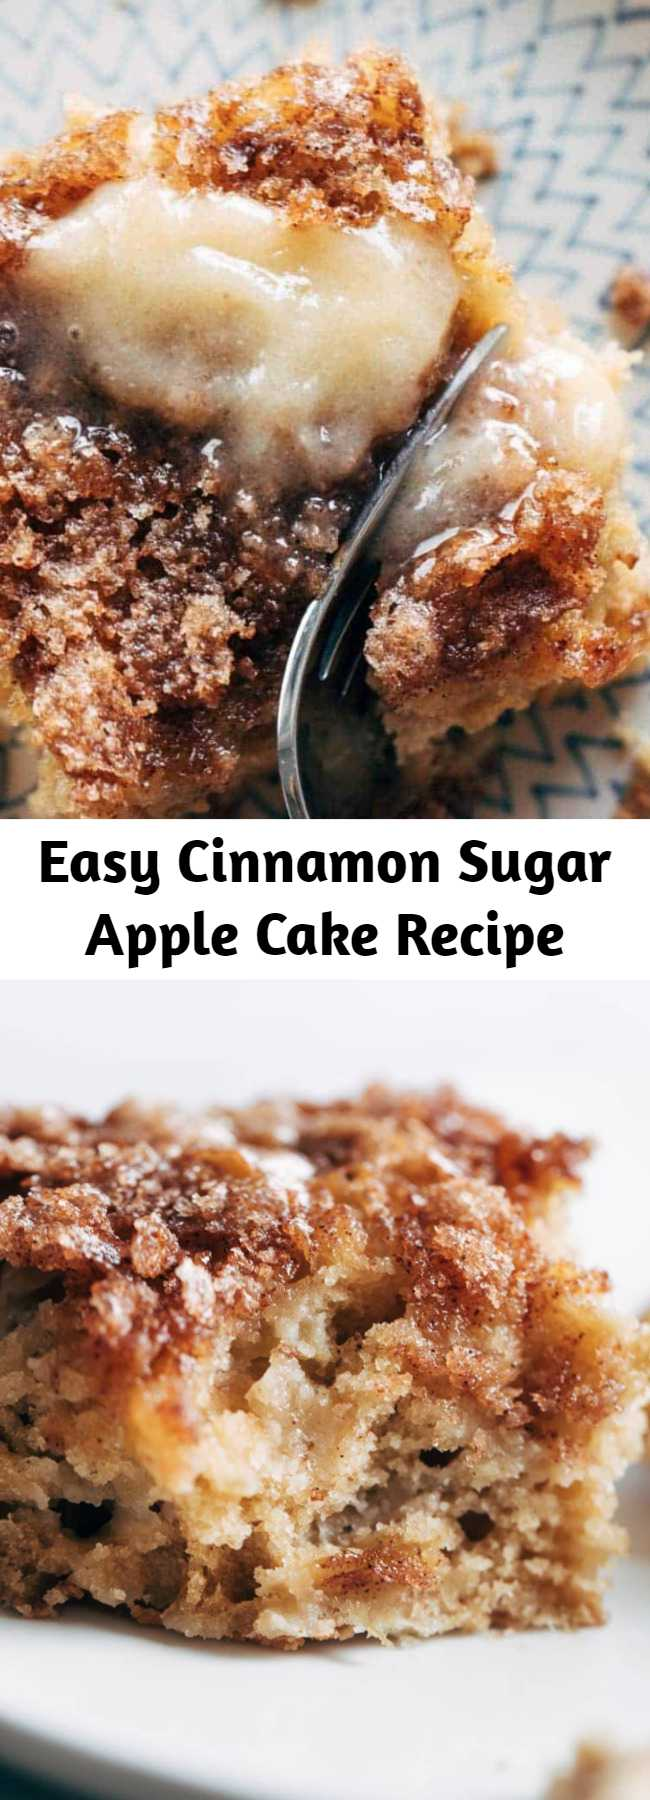 Easy Cinnamon Sugar Apple Cake Recipe - This simple cinnamon sugar apple cake is light and fluffy, loaded with fresh apples, and topped with a crunchy cinnamon sugar layer! #cake #apple #dessert #baking #recipe